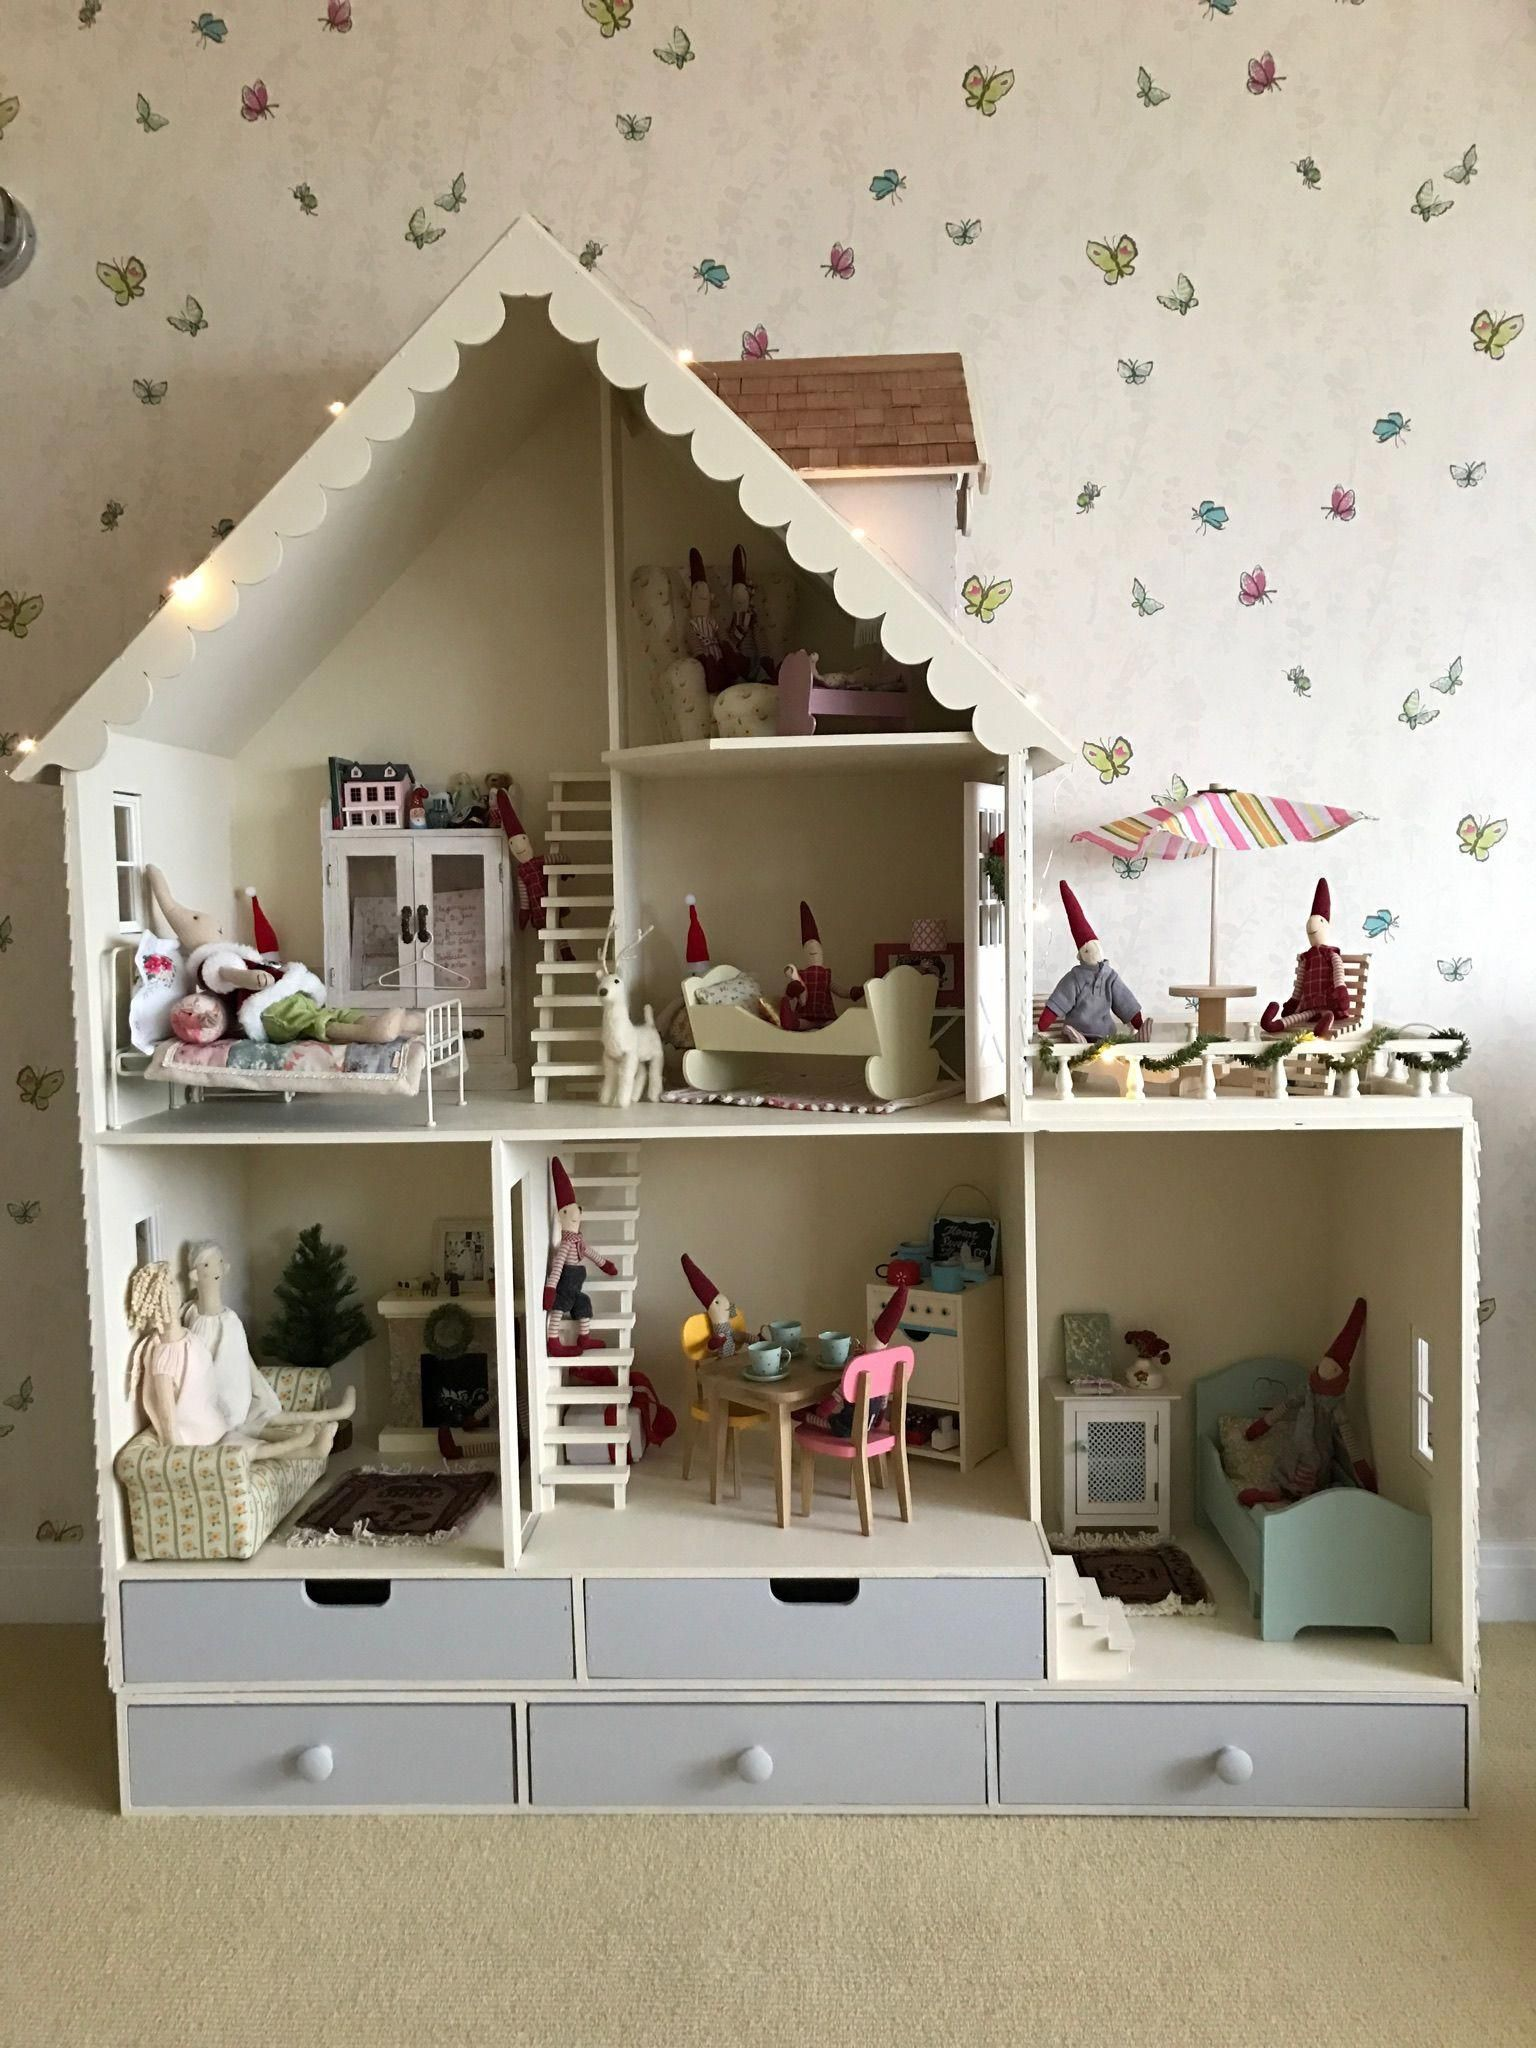 See how Chicagoean decorates a wooden Barbie Martin